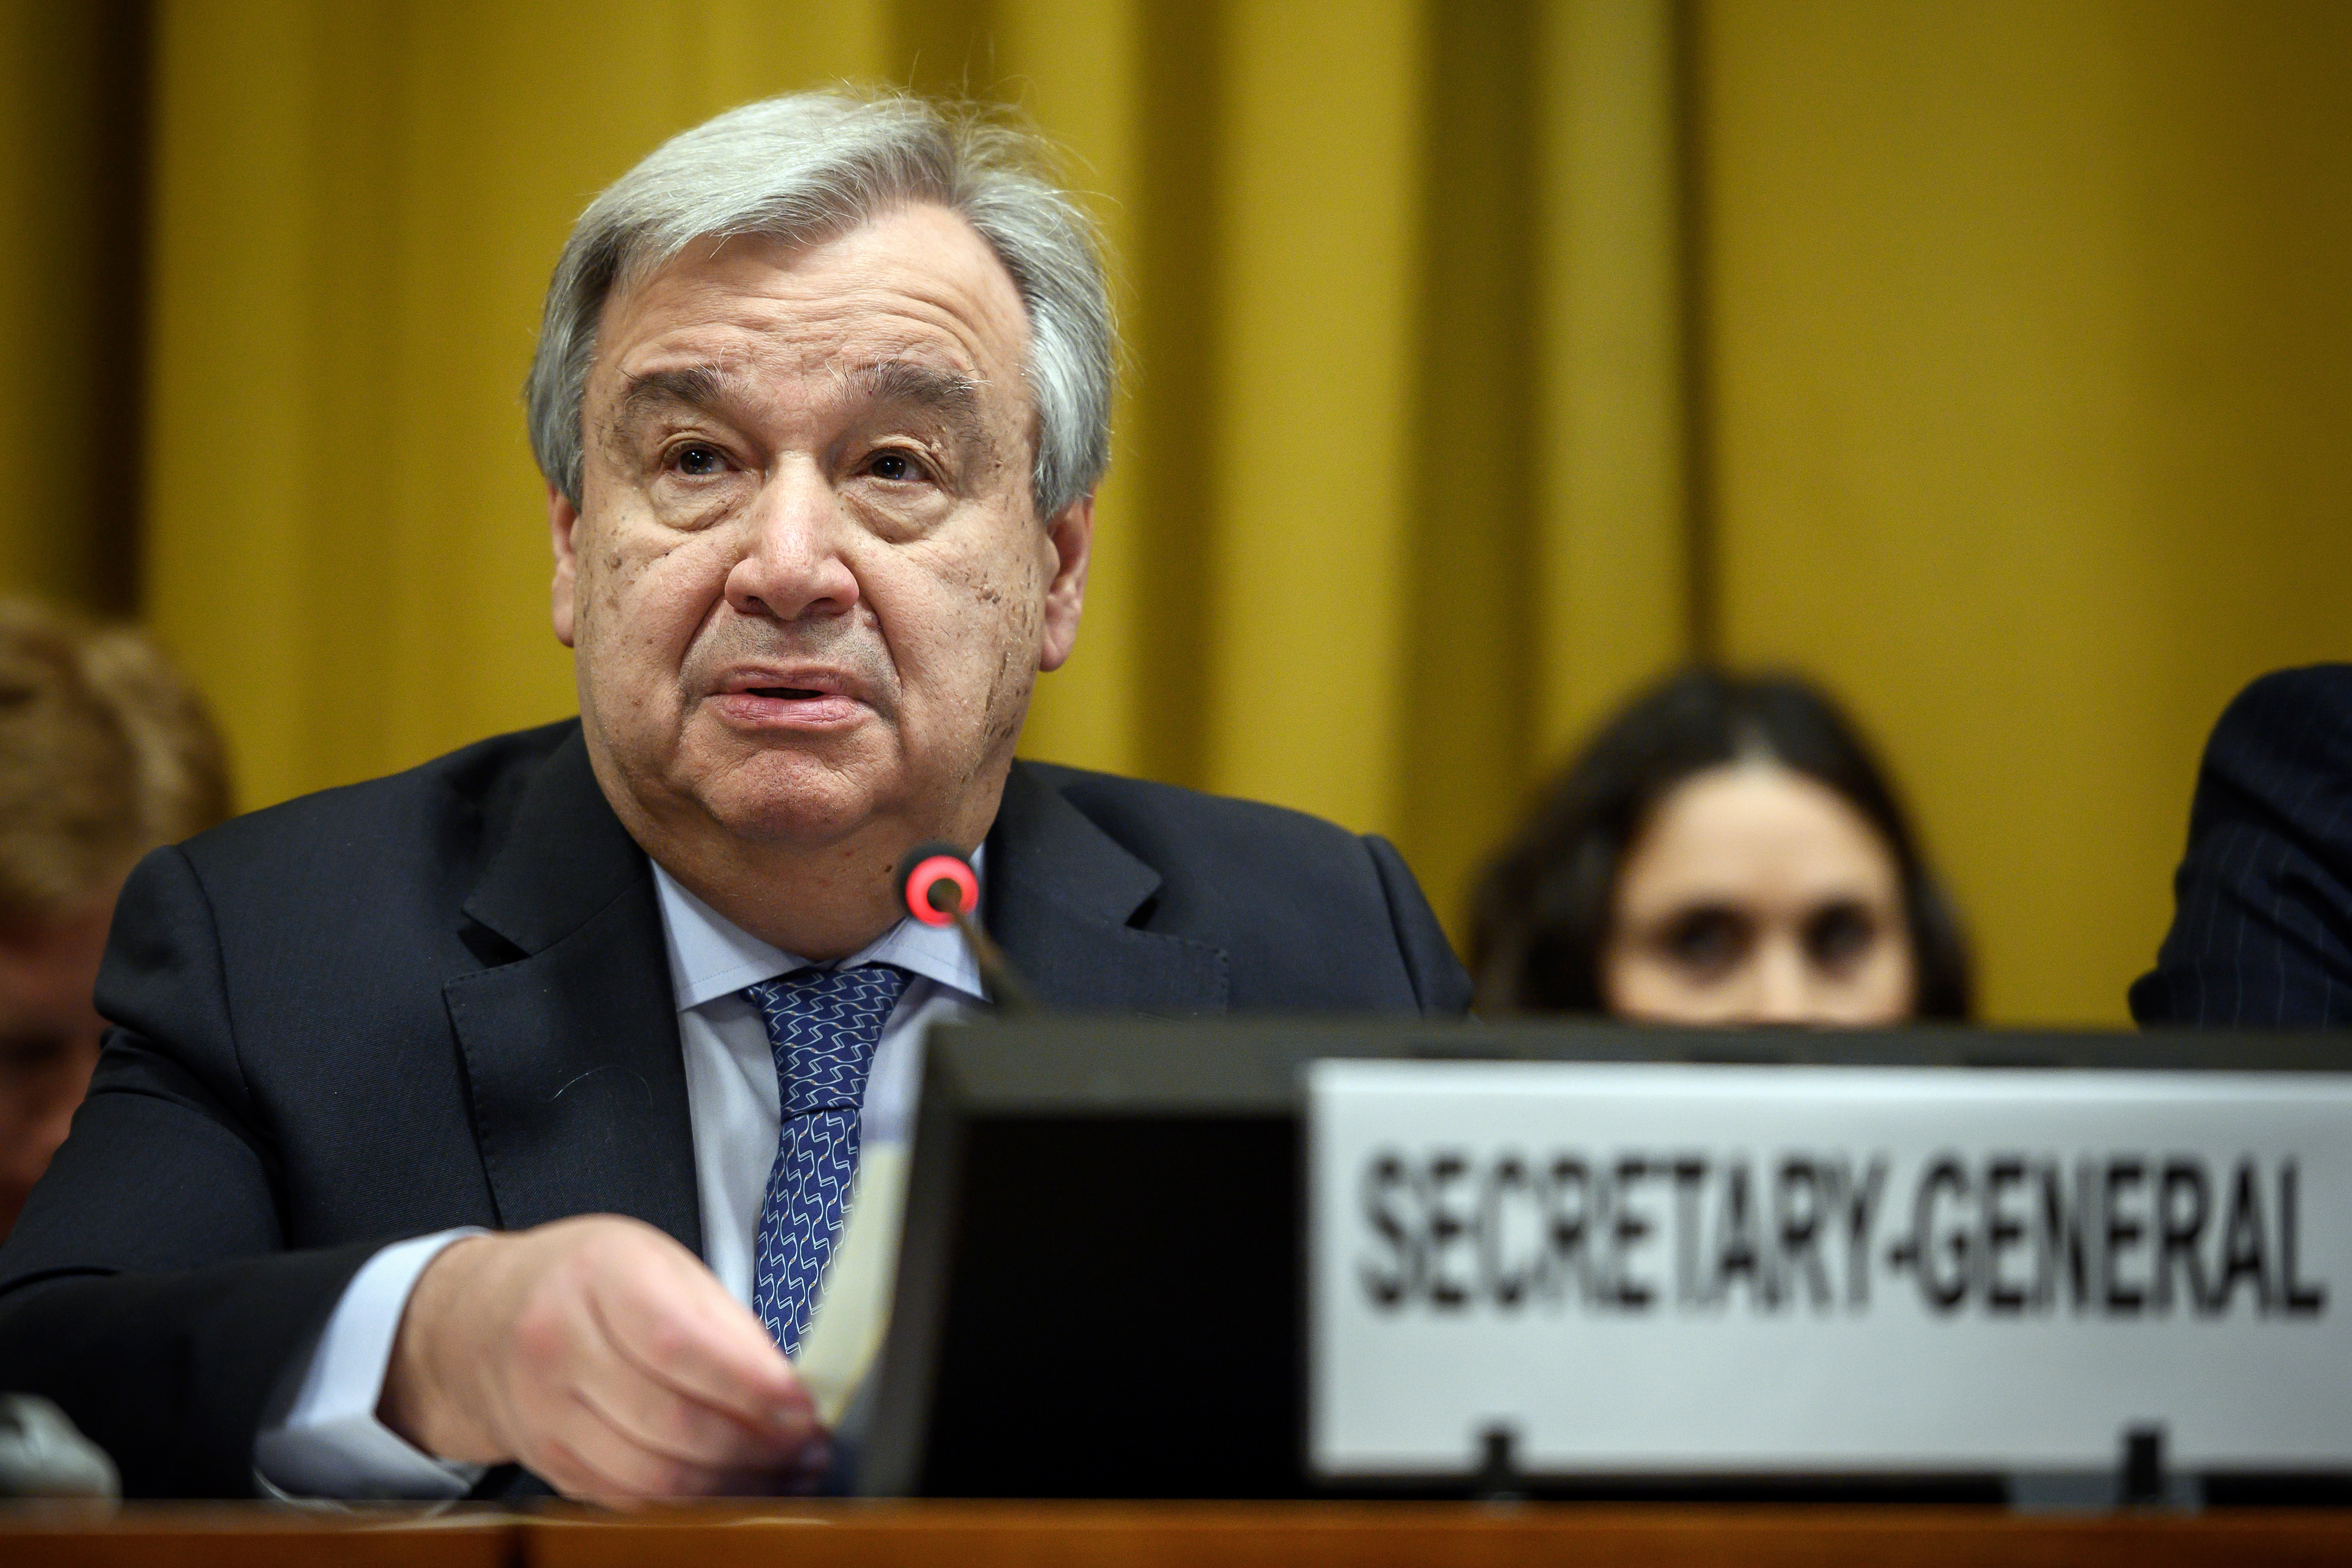 U.N. Secretary-General Antonio Guterres delivers a speech before the United Nations Conference on Disarmament, Feb. 25, 2019, in Geneva. -